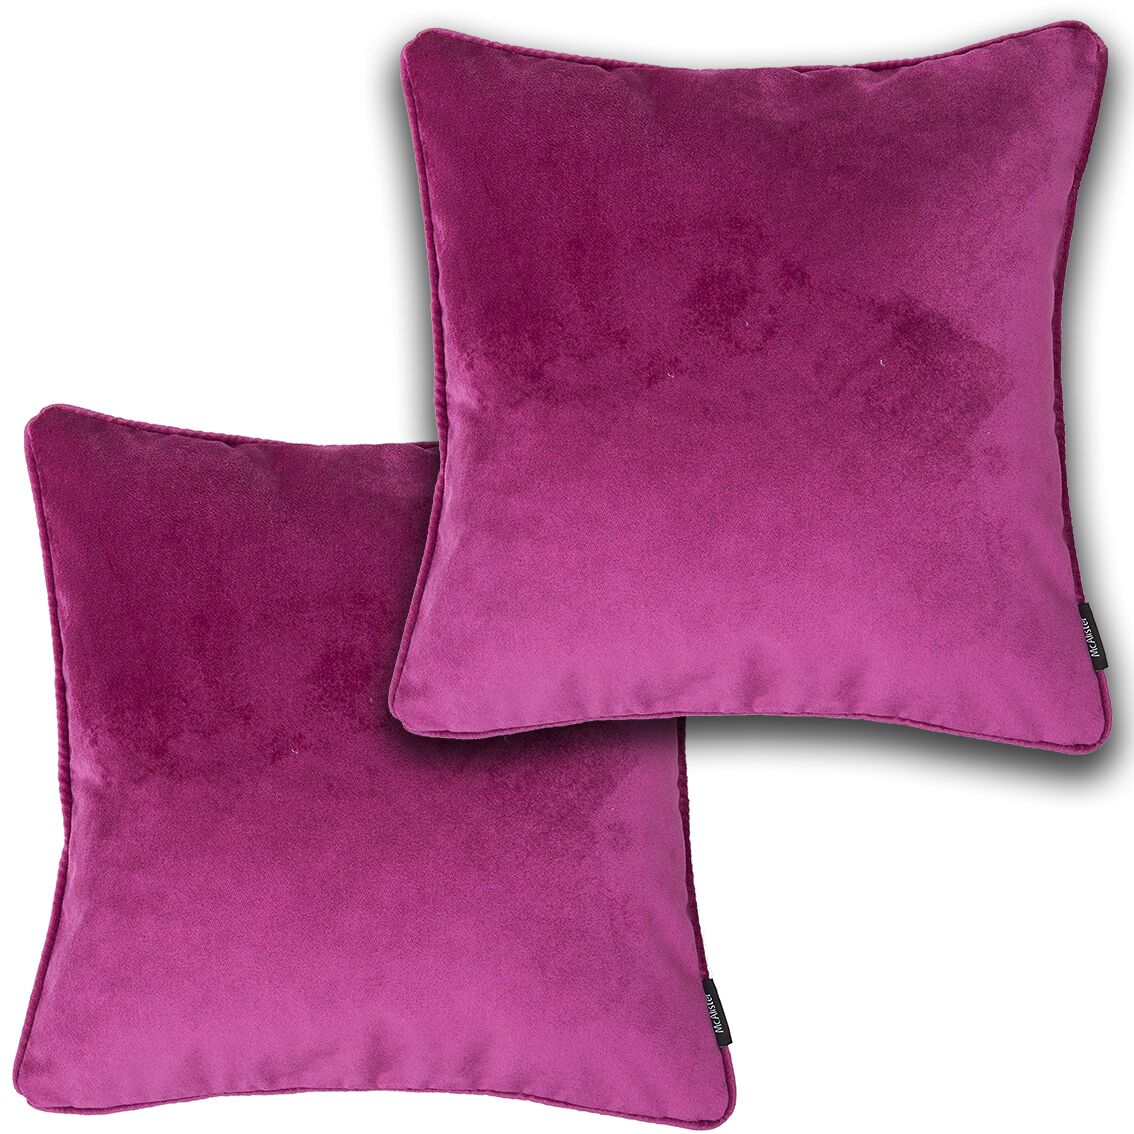 McAlister Textiles Matt Fuchsia Pink Velvet 43cm x 43cm Cushion Sets Cushions and Covers Cushion Covers Set of 2